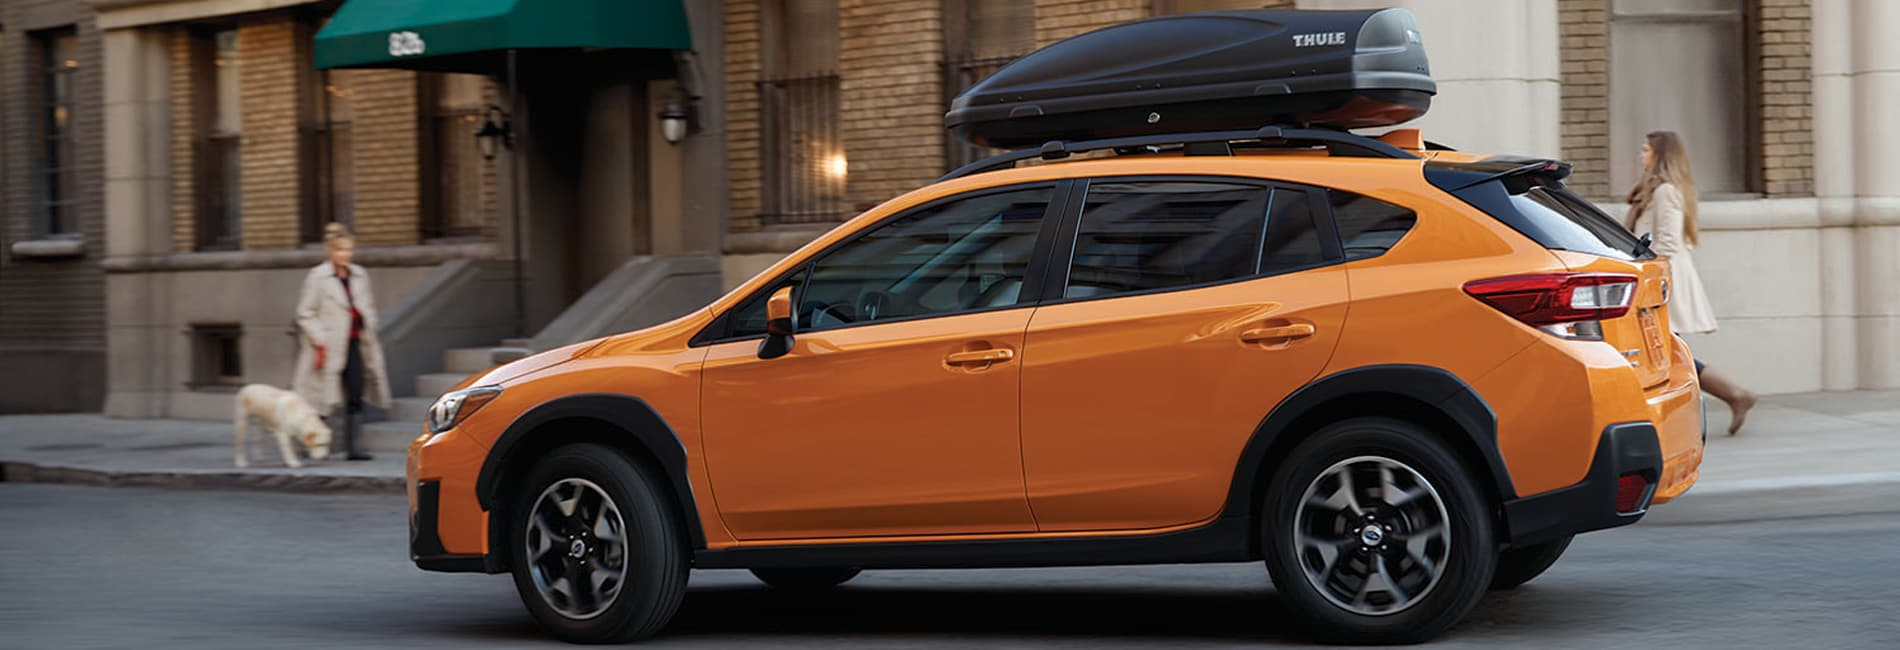 2019 Subaru Crosstrek Exterior Features